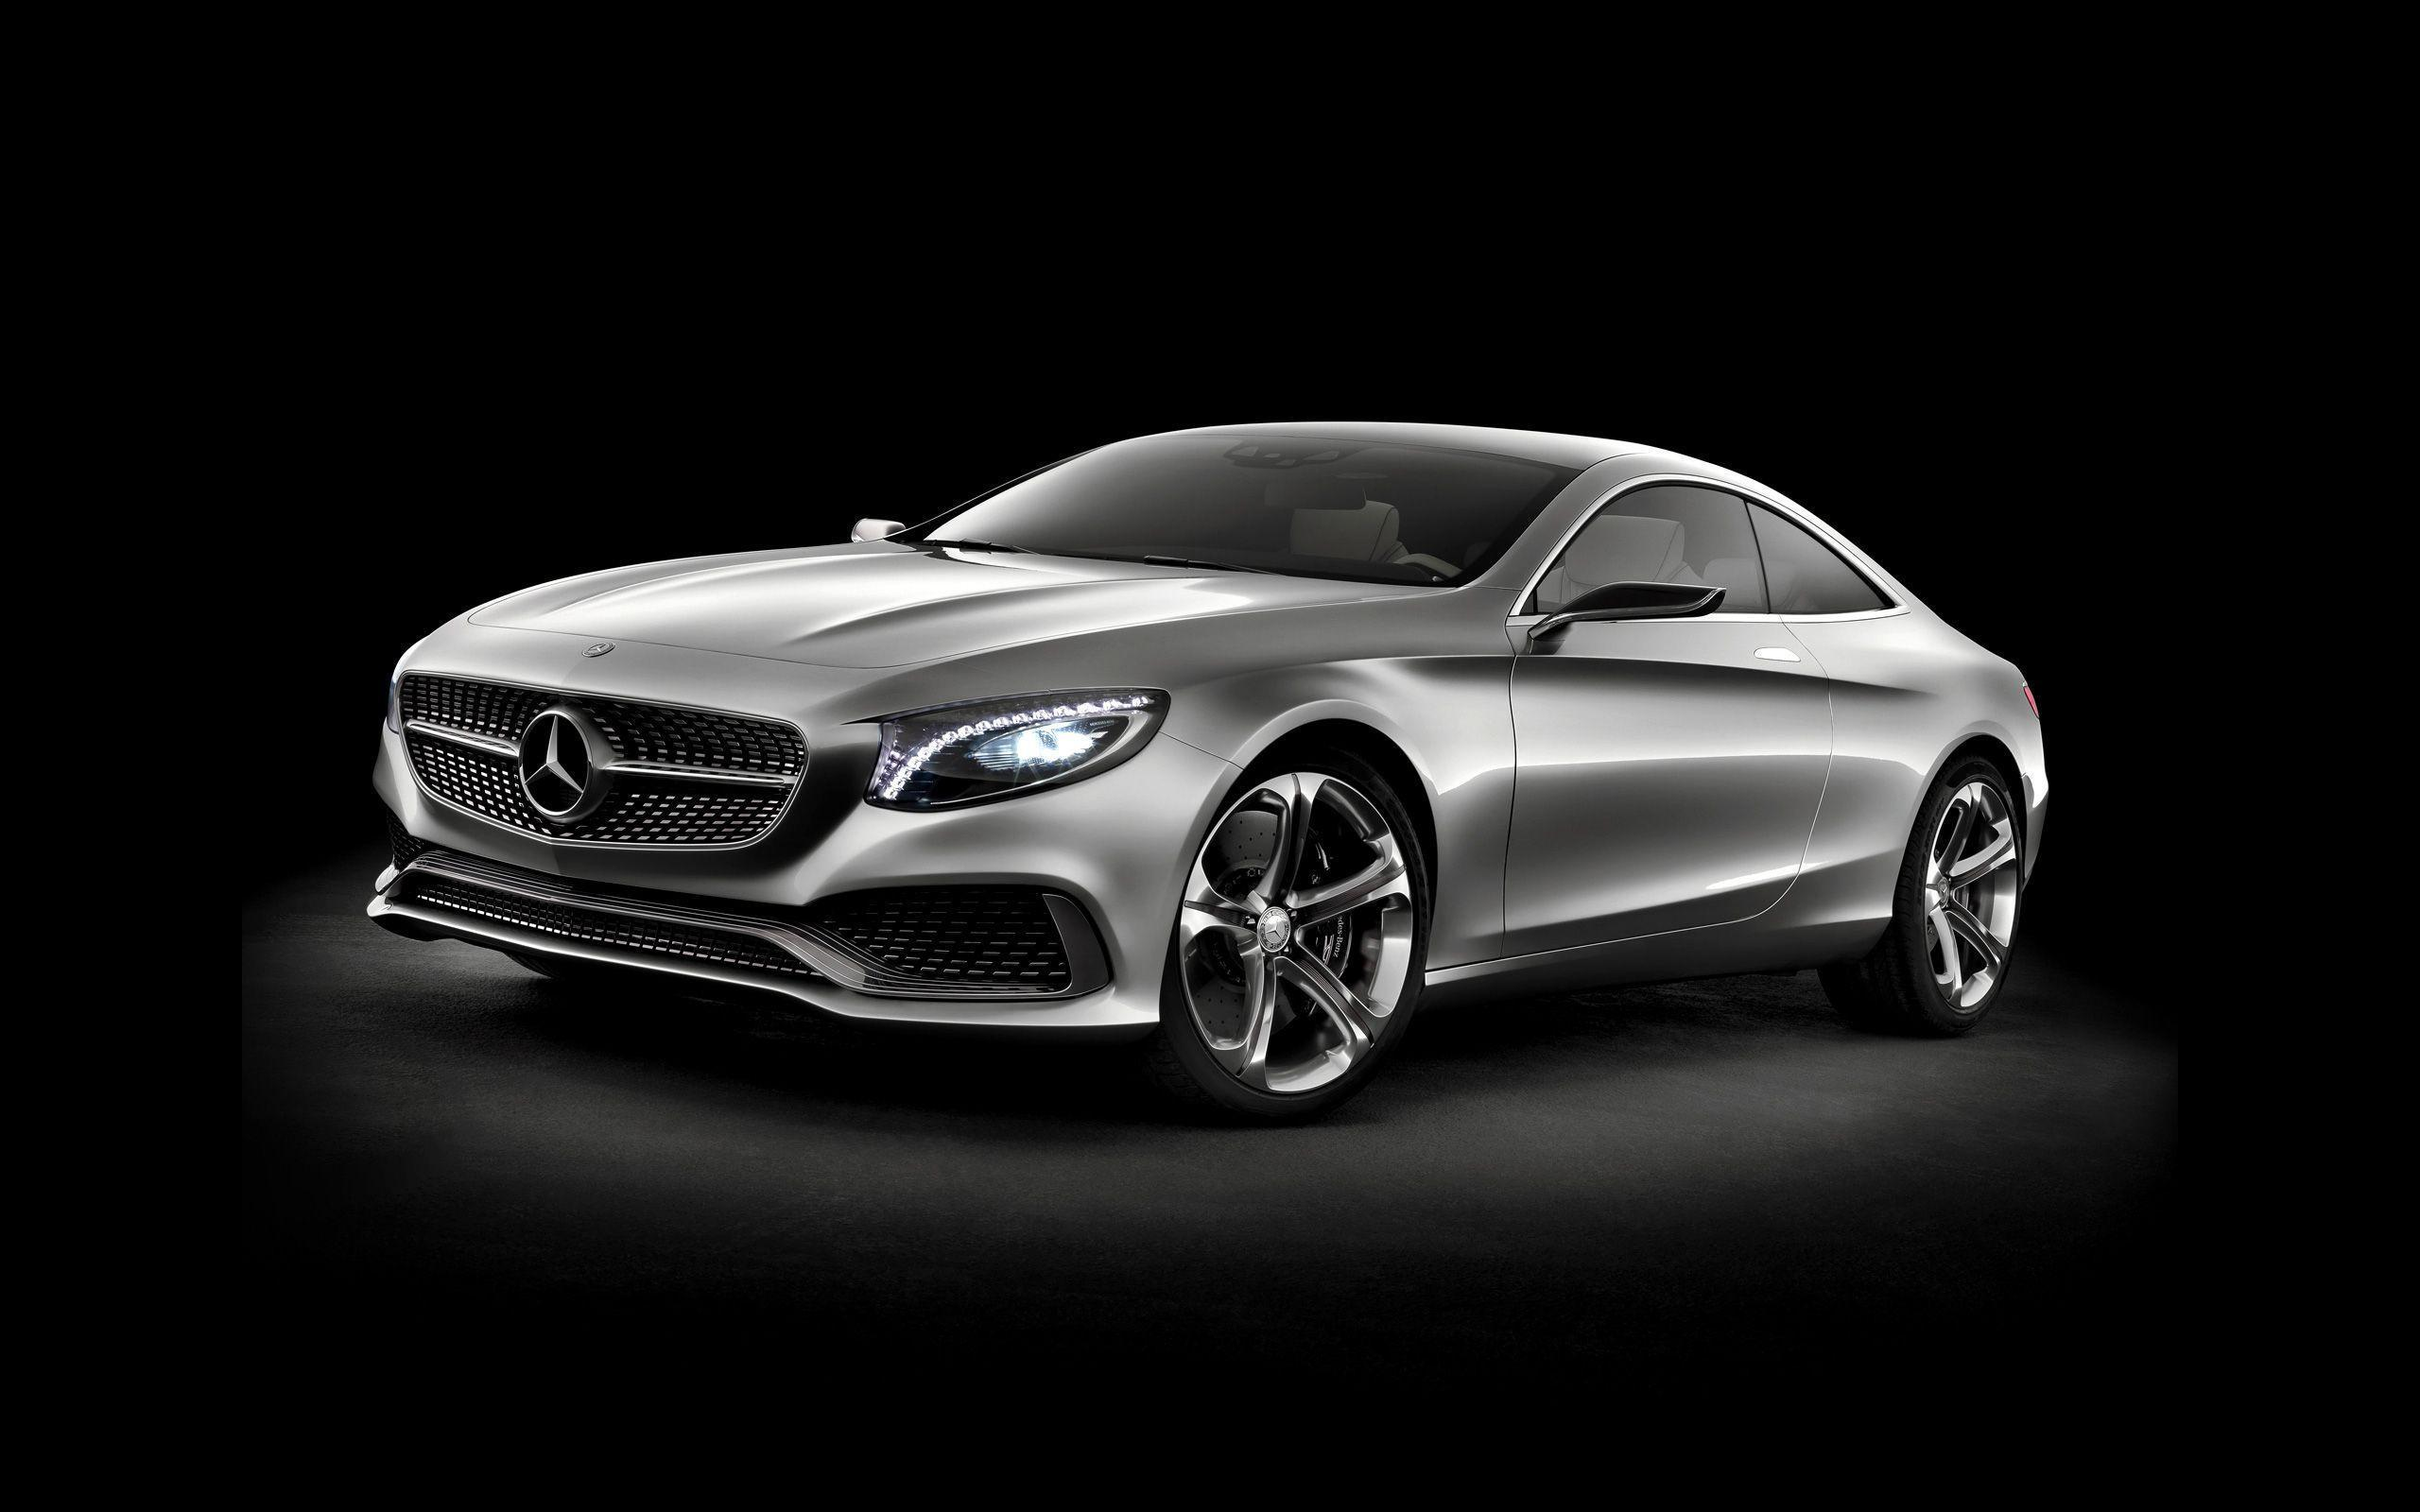 2017 Mercedes Benz S Class Wallpapers